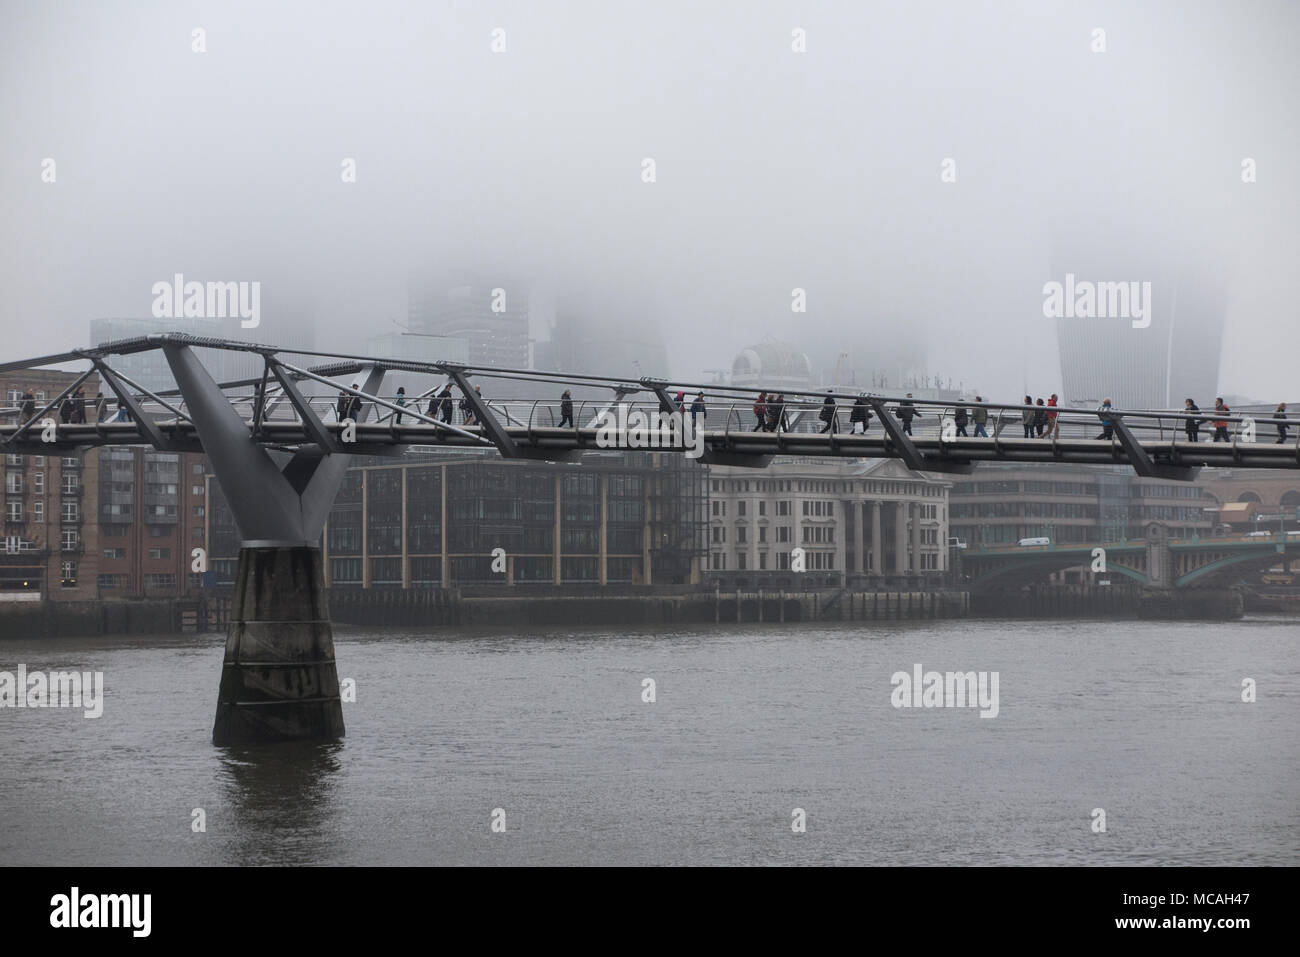 a gloomy, misty day in London with the skyscrapers shrouded in mist and fog whilst commuters and tourists walk over the Millennium bridge - Stock Image